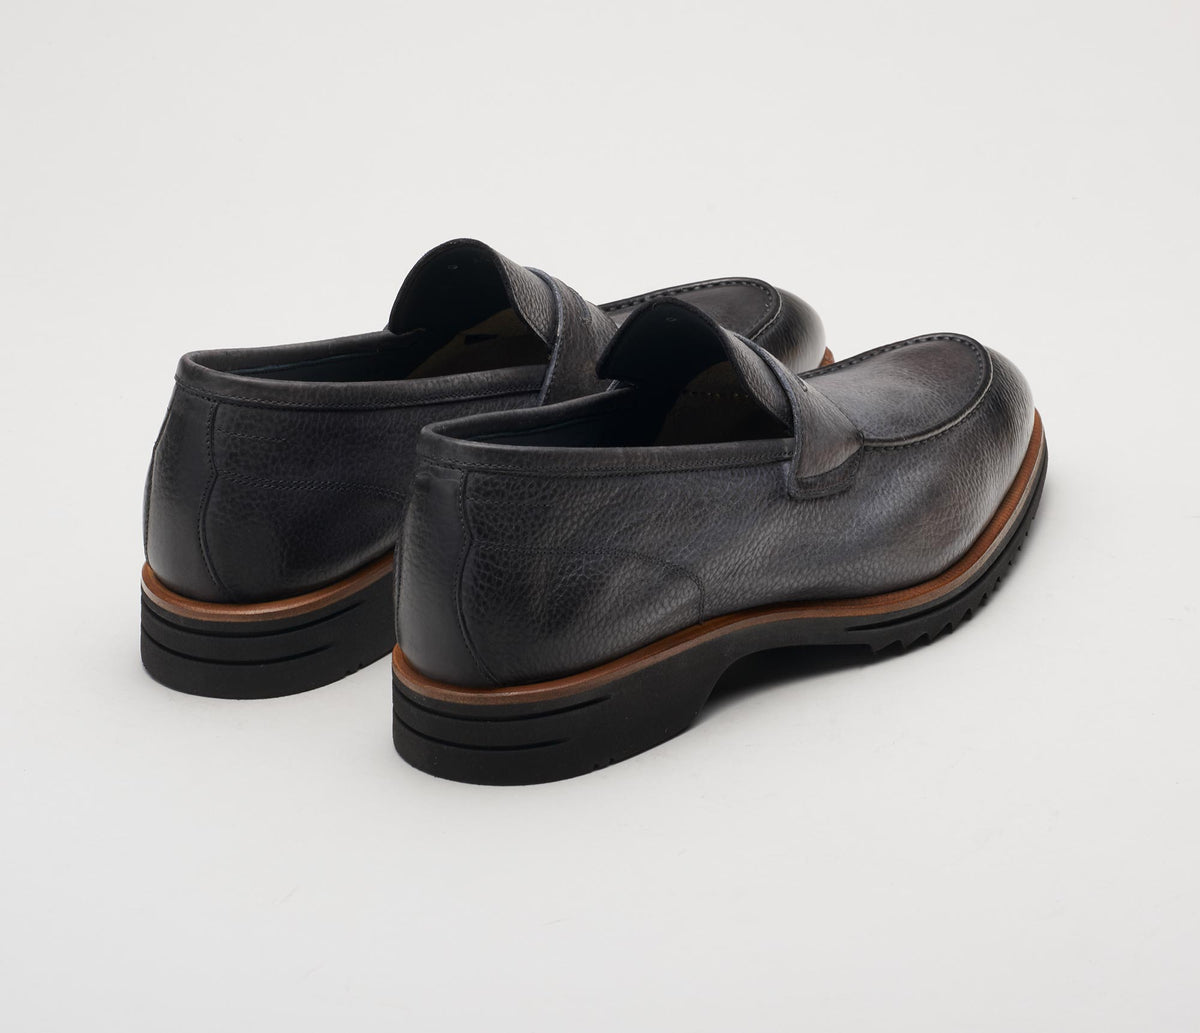 The Brera Fumo Men's Loafer